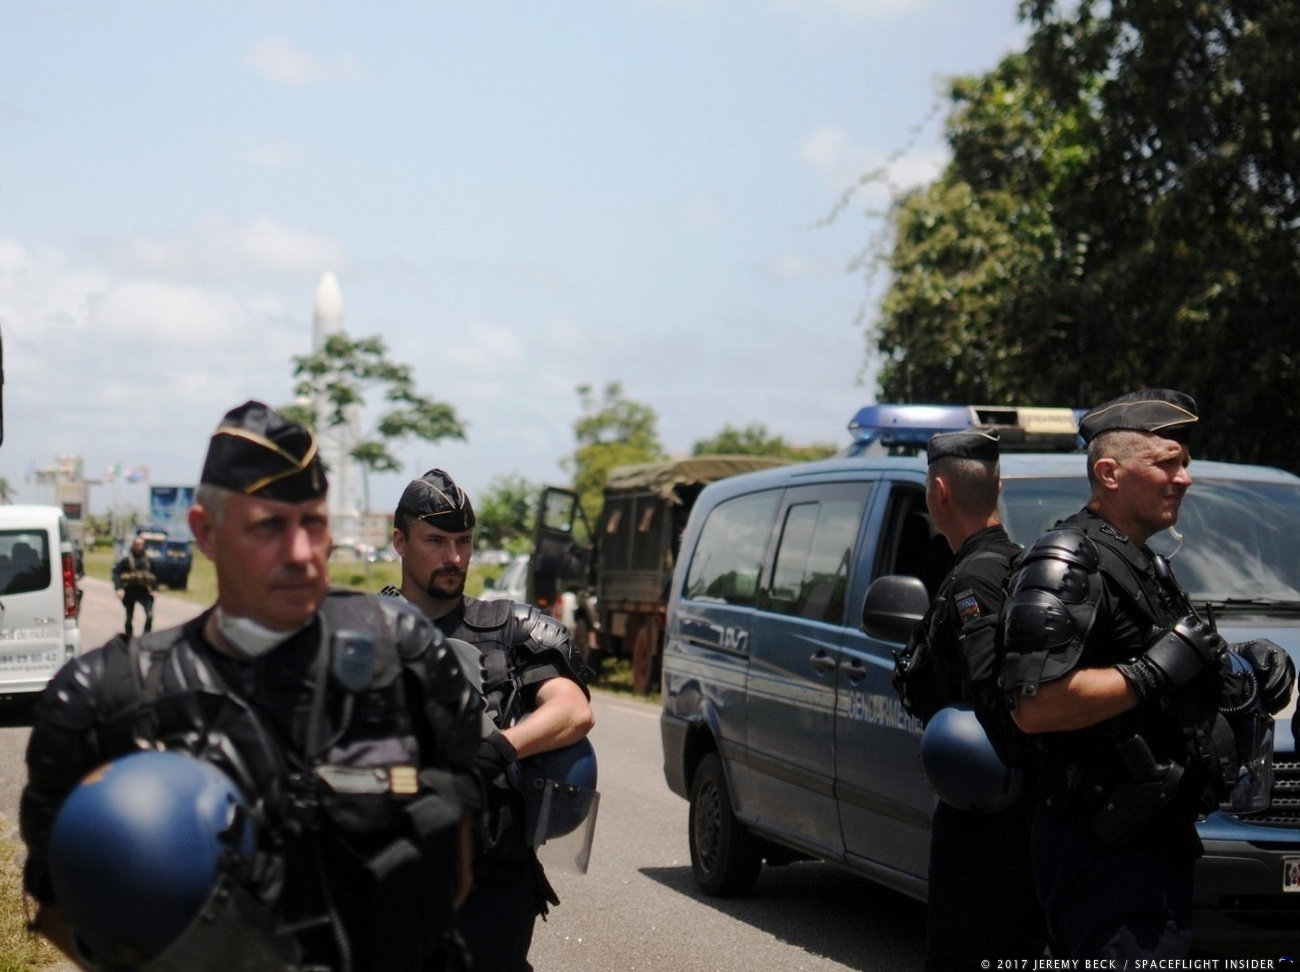 Guiana Space Centre: French police were on hand for Tuesday's protests in the event of possible violence. Photo Credit: Jeremy Beck / SpaceFlight Insider